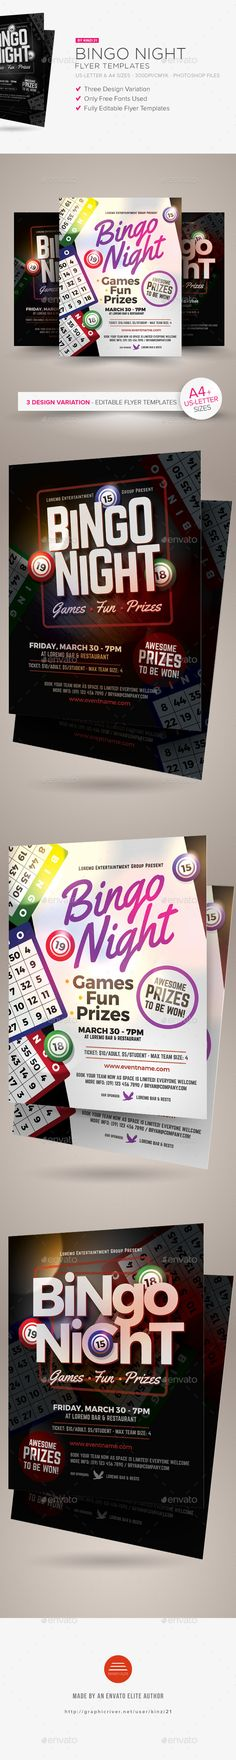 Bingo Night Flyer Templates — Photoshop PSD #ads #sunday • Available here → https://graphicriver.net/item/bingo-night-flyer-templates/19385961?ref=pxcr